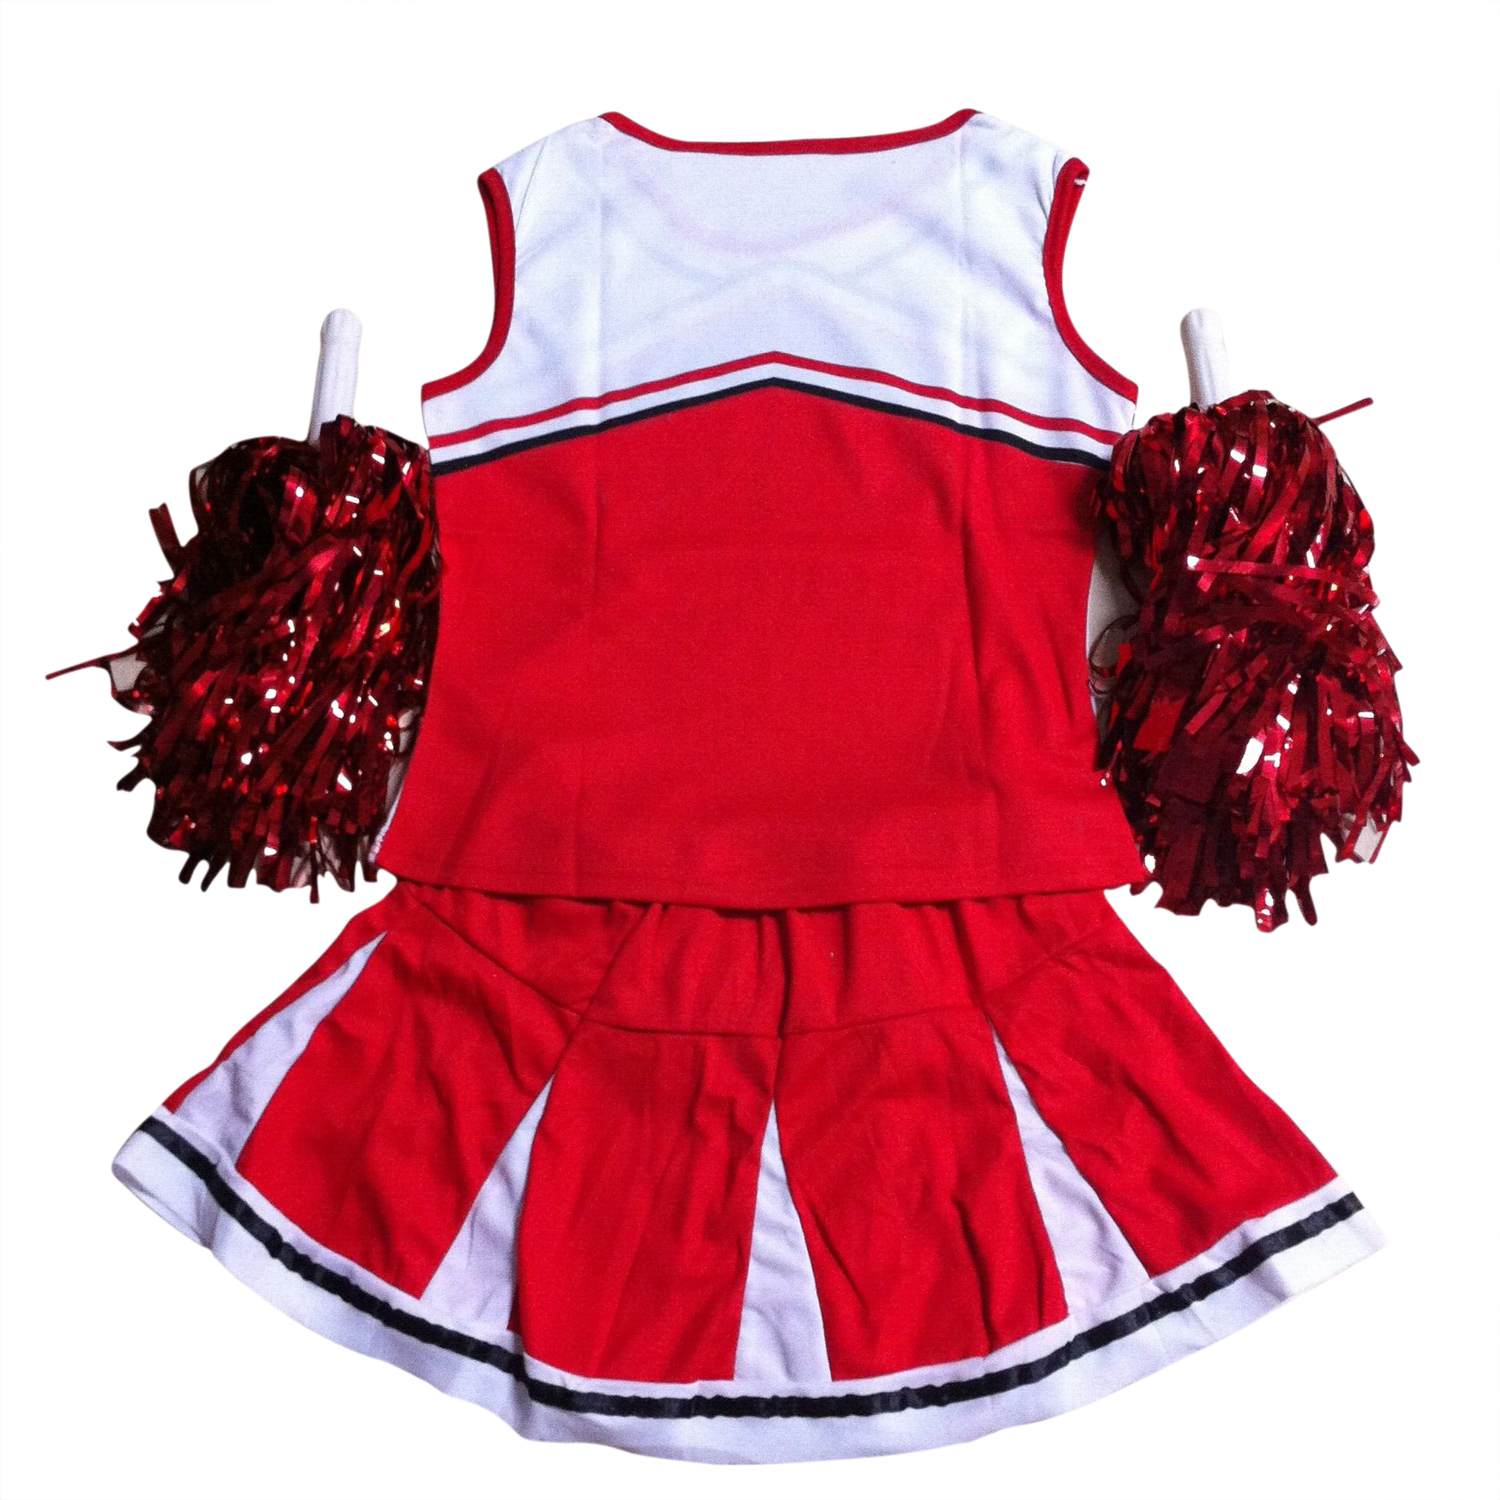 Tank top Petticoat Pom-poms cheer leaders 2 piece suit new red costume RED